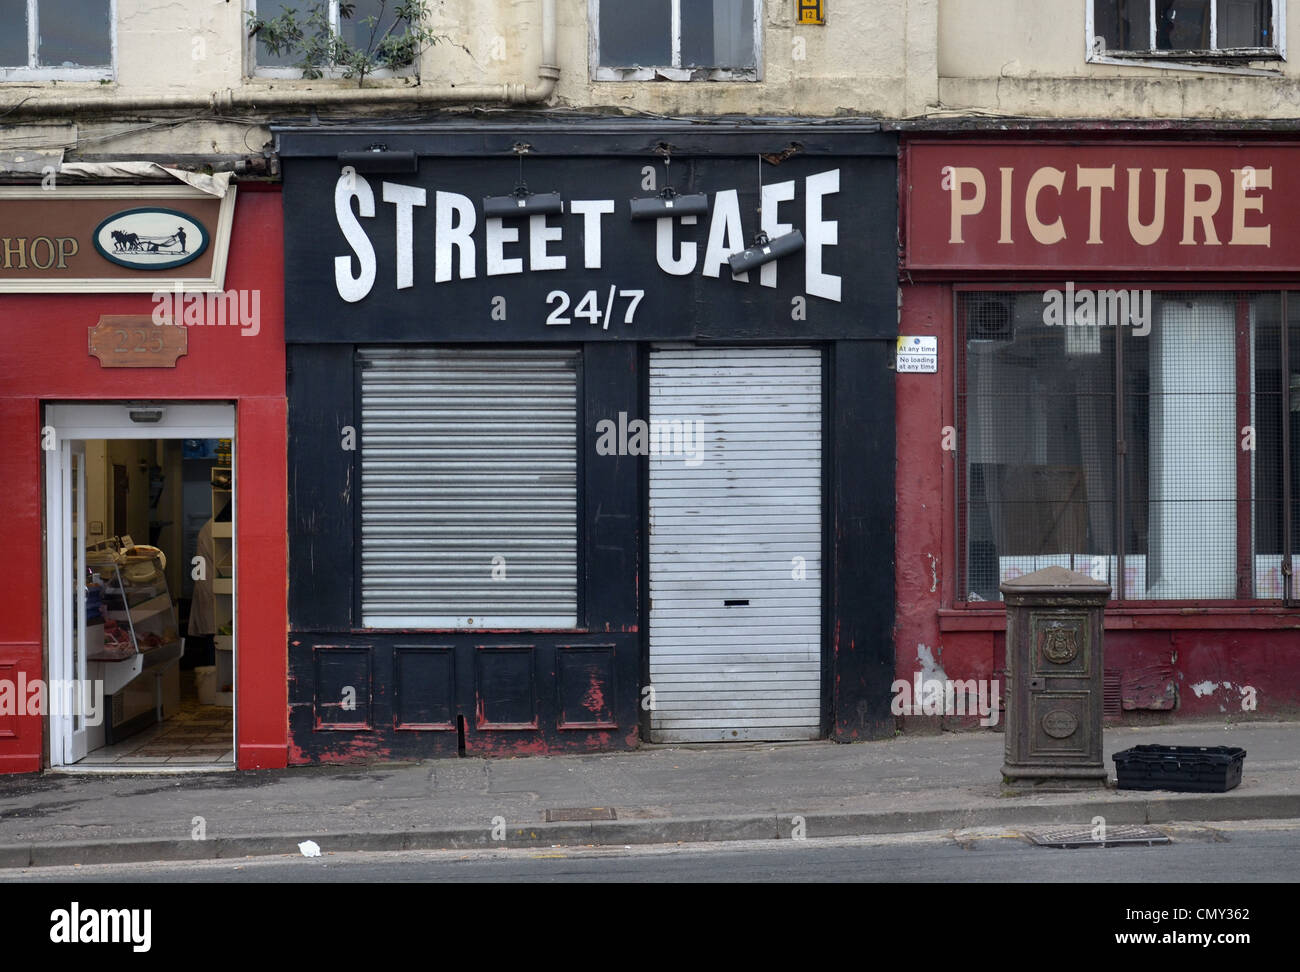 'Street Cafe' - a small cafe in Glasgow High Street which claims to be open 24/7 though that doesn't - Stock Image